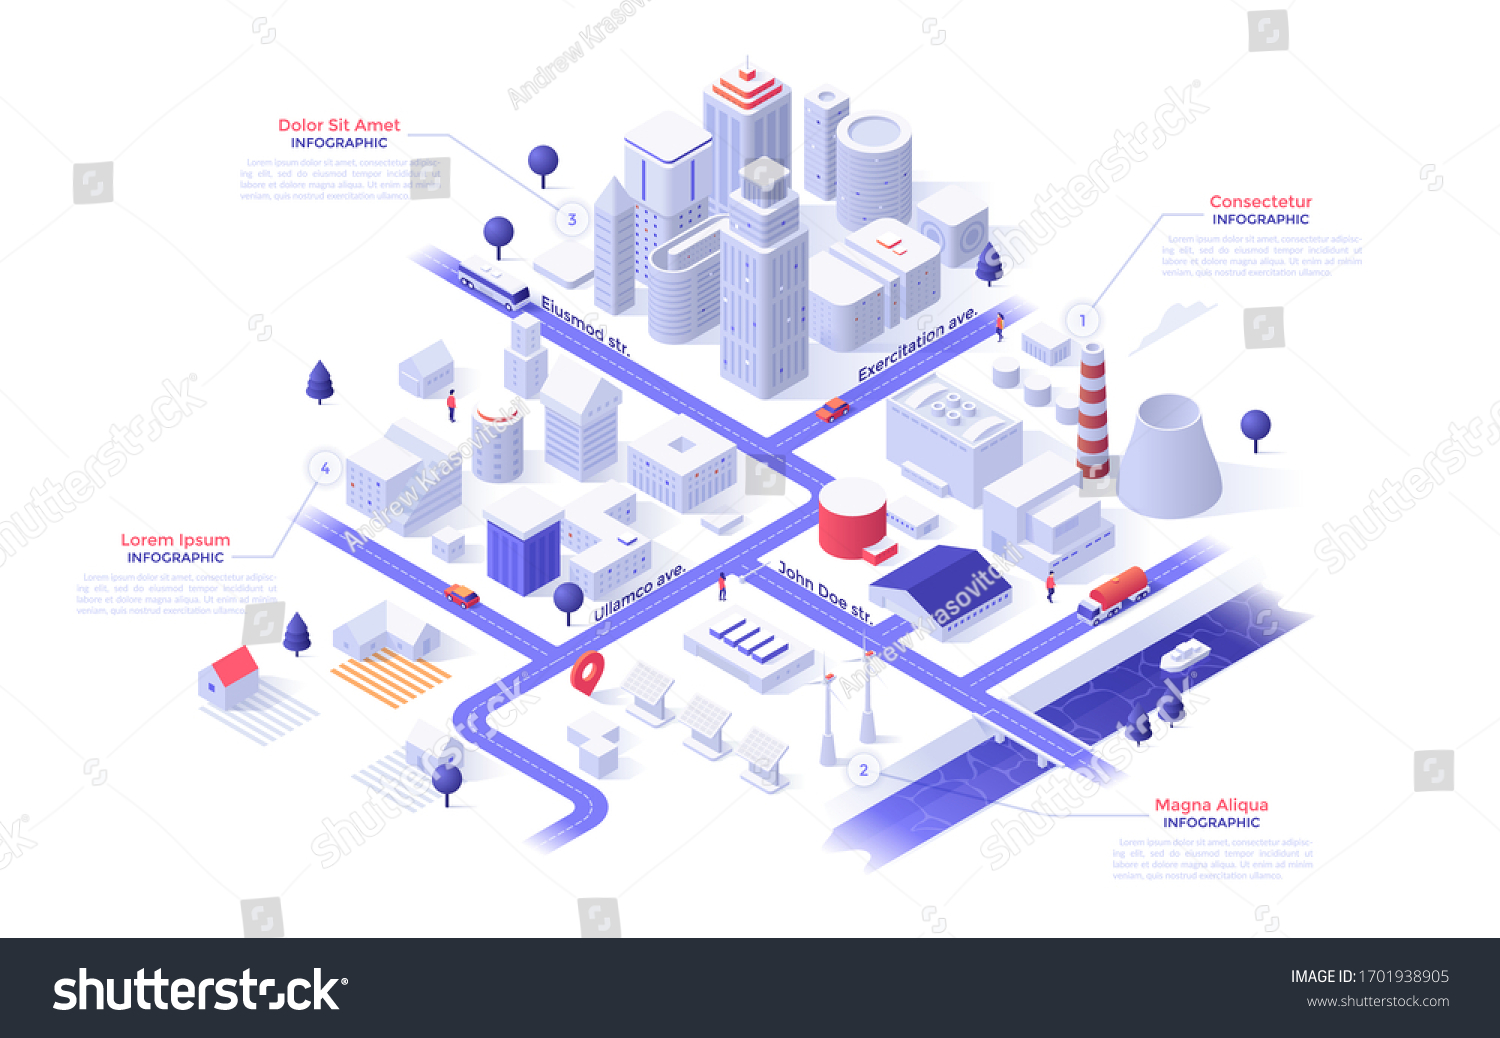 Isometric map of metropolis city with paper white downtown skyscrapers, suburban houses, industrial buildings, power plants, streets, river, bridge. Infographic design template. Vector illustration.